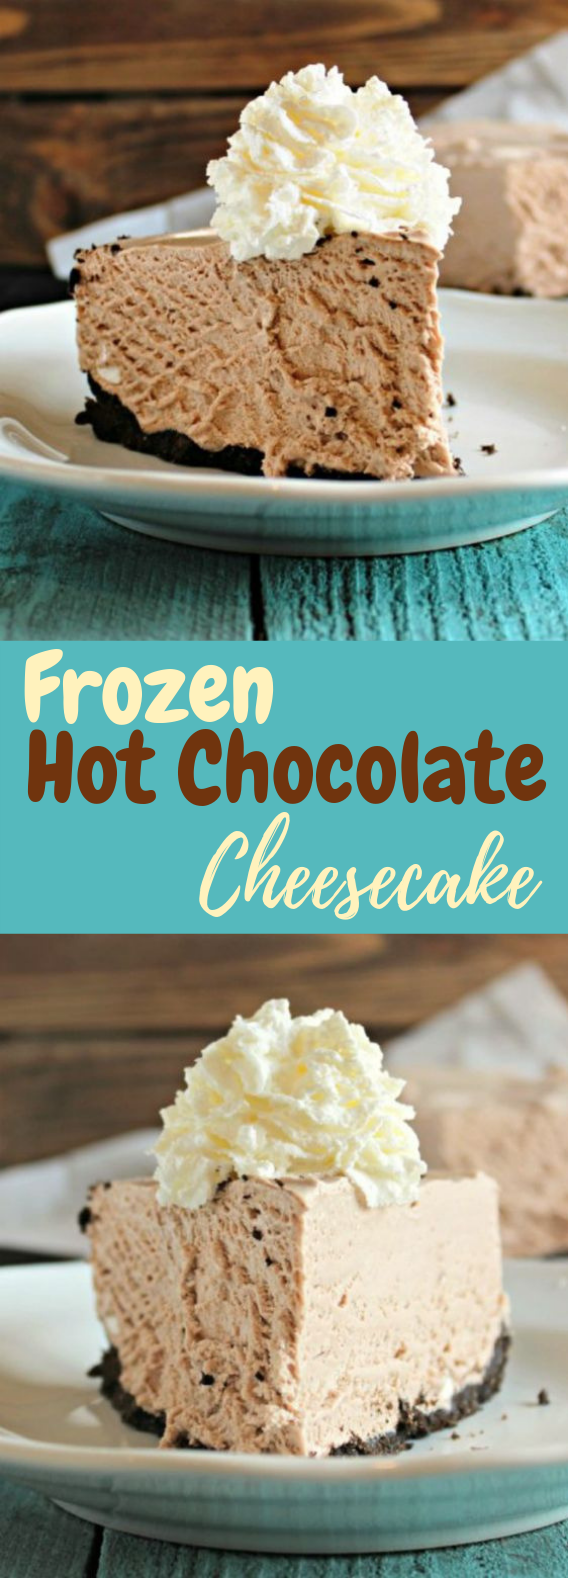 FROZEN HOT CHOCOLATE CHEESECAKE #Chocolate #CheeseCake